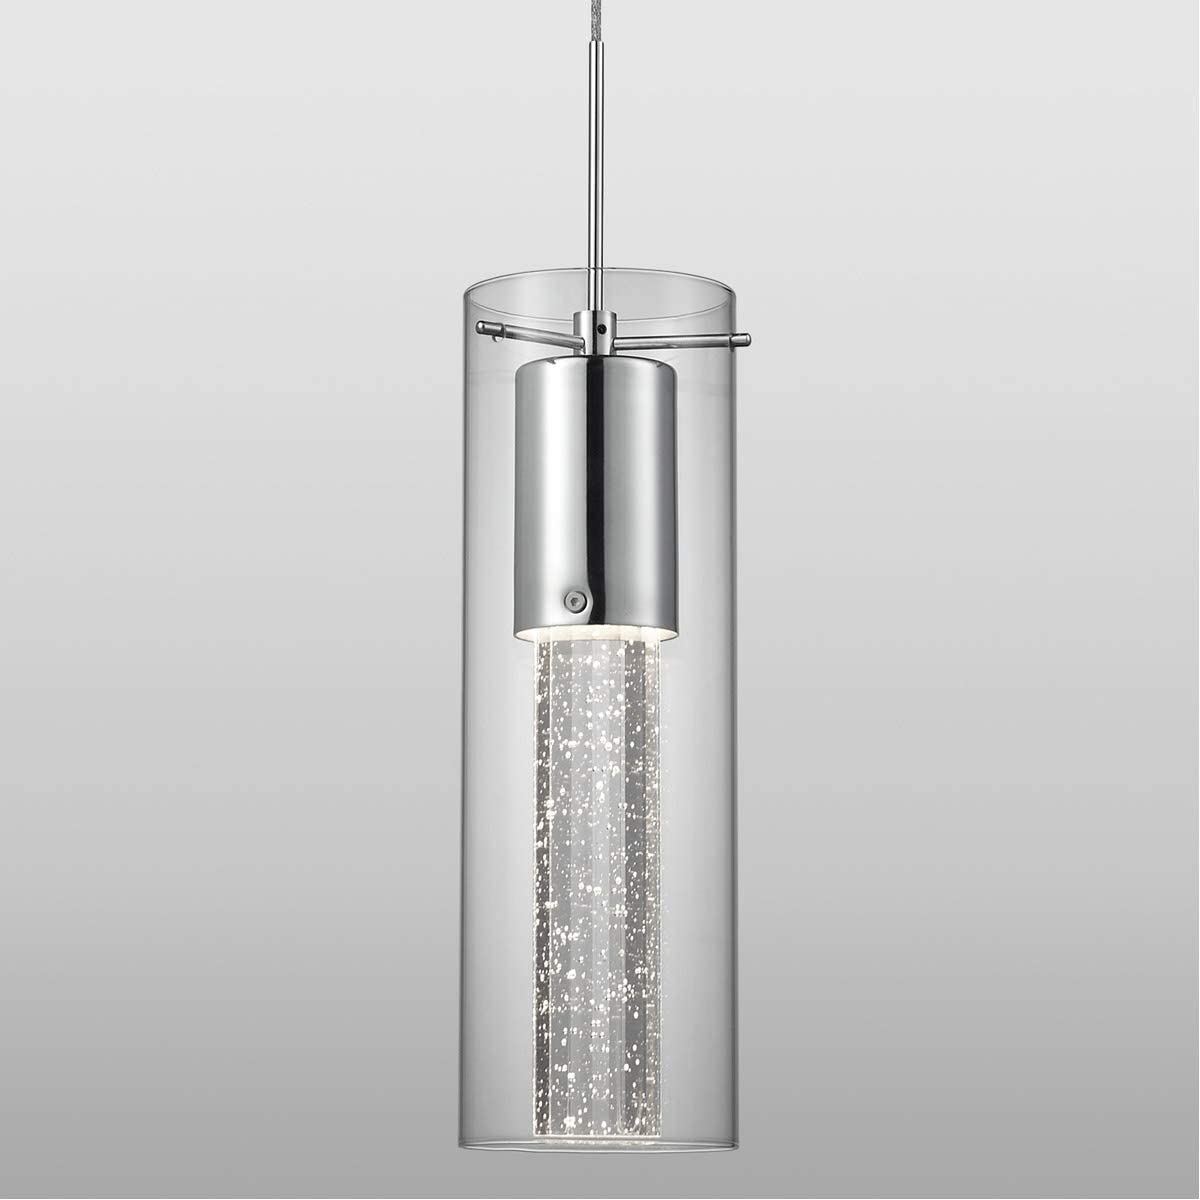 Kuzco Lighting PD4401-CH Single Led Pendant with Encased Crystal Bubbles in Glass Shade On Chrome Canopy